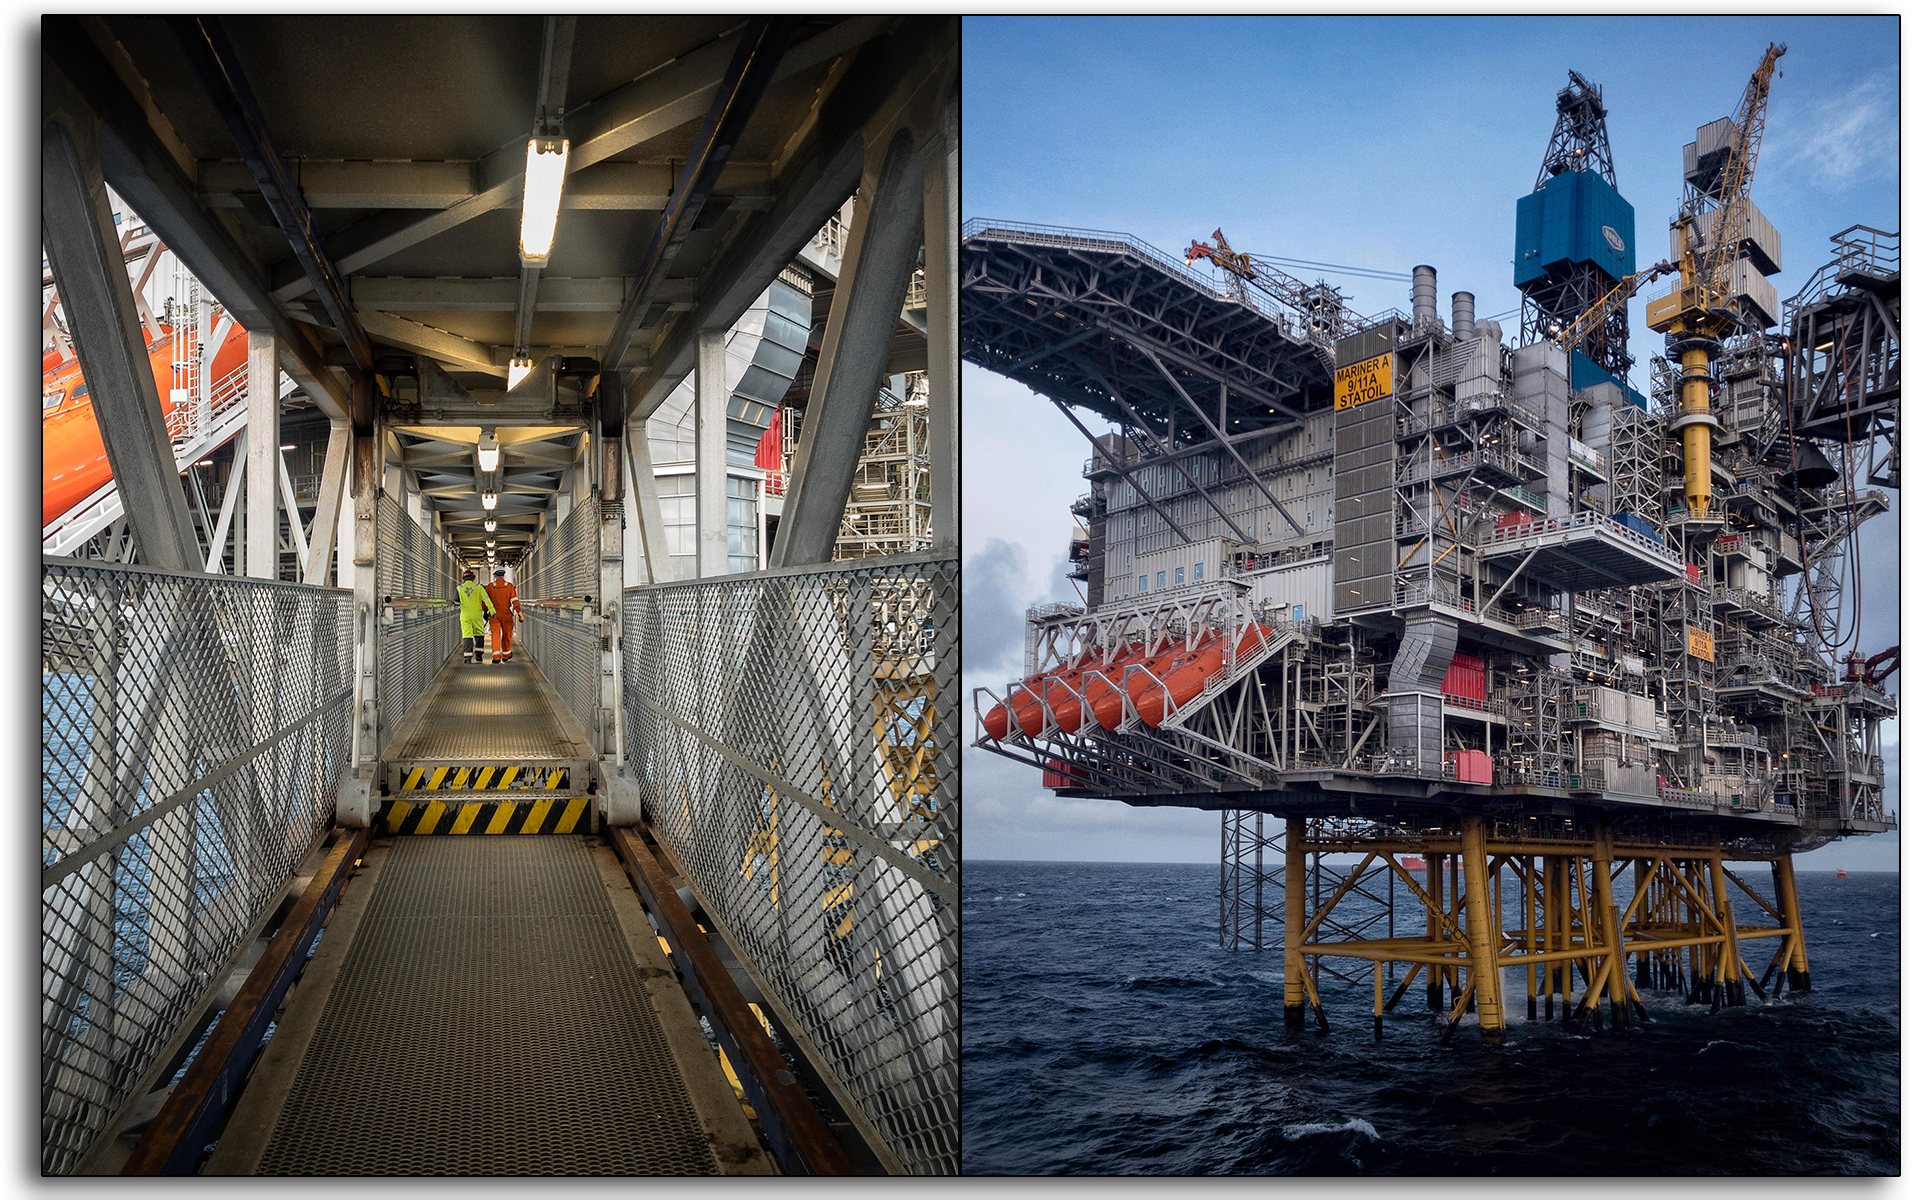 Bridge, gangway, walk to work, Oil and gas, oil rig, Scotland, industry, industrial, Mariner, workers, construction.jpg